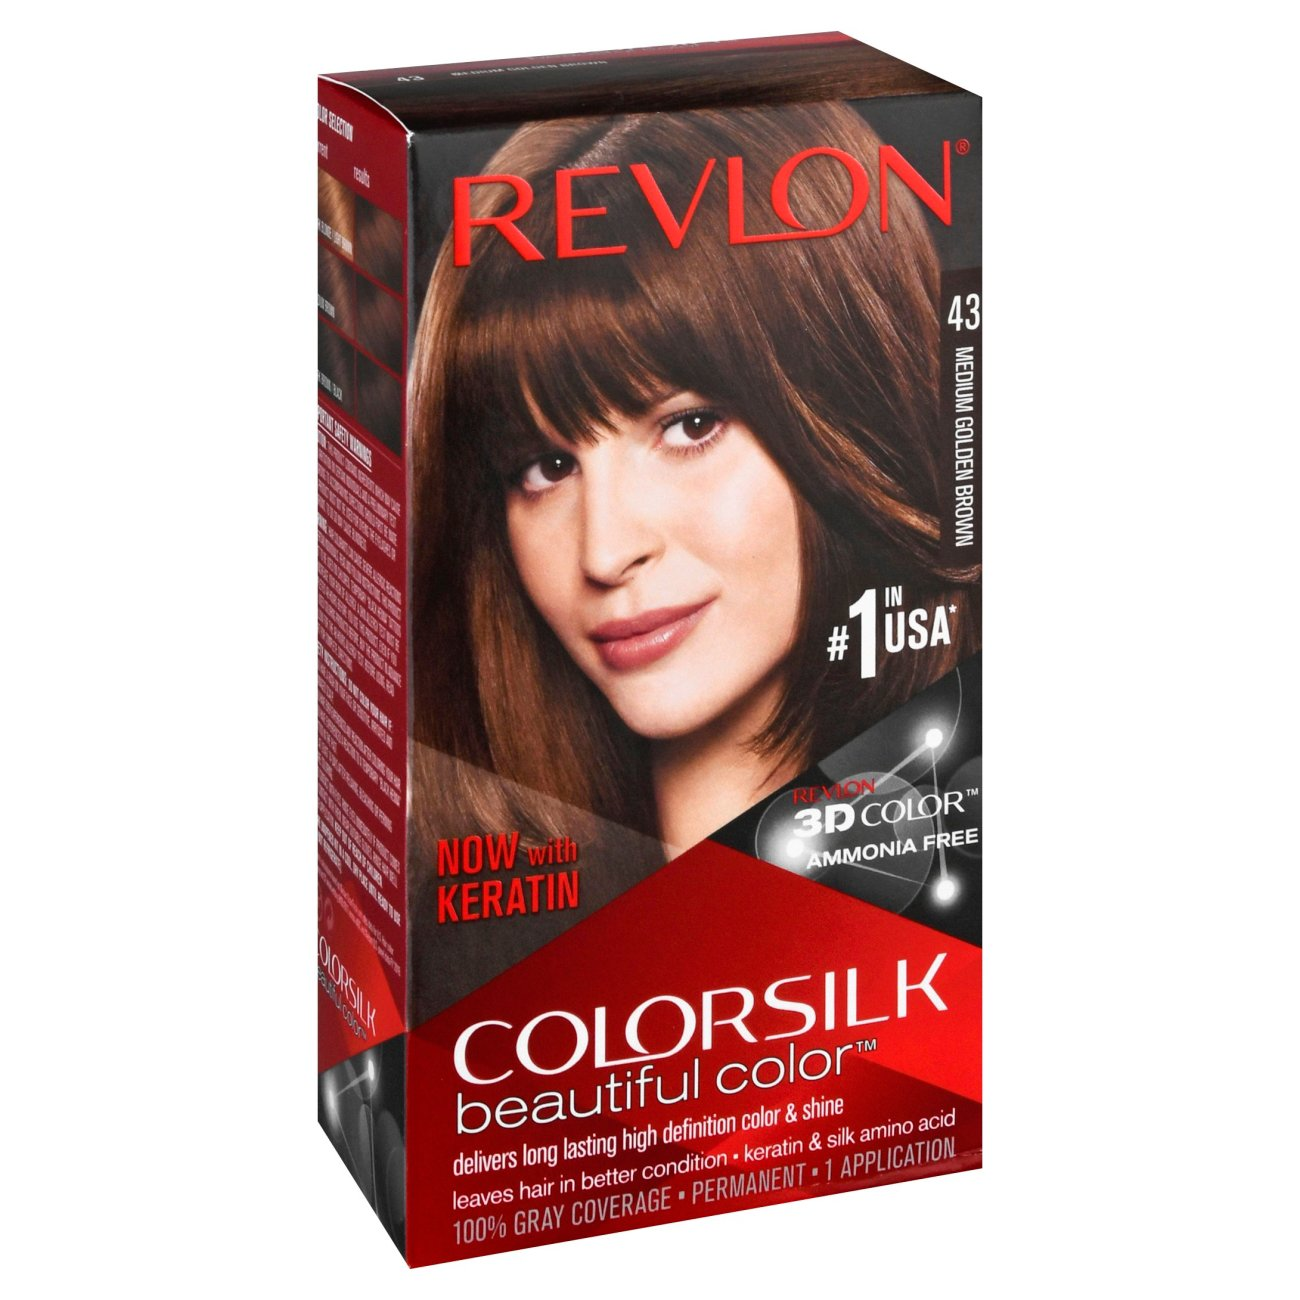 Revlon Colorsilk Beautiful Color 43 Medium Golden Brown Shop Hair